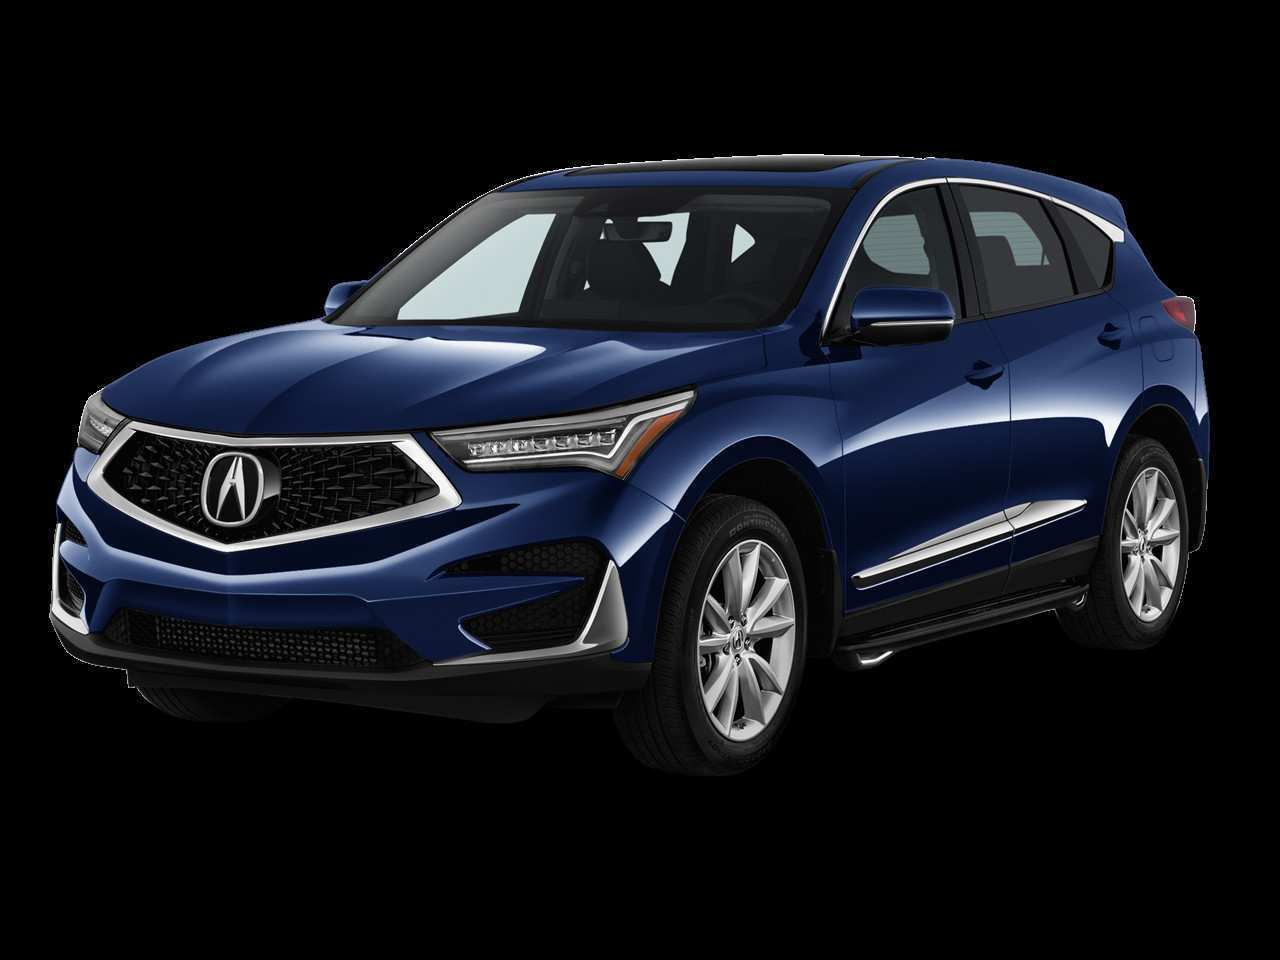 13 Great Best 2019 Acura Rdx Towing Capacity First Drive Price Performance And Review History with Best 2019 Acura Rdx Towing Capacity First Drive Price Performance And Review